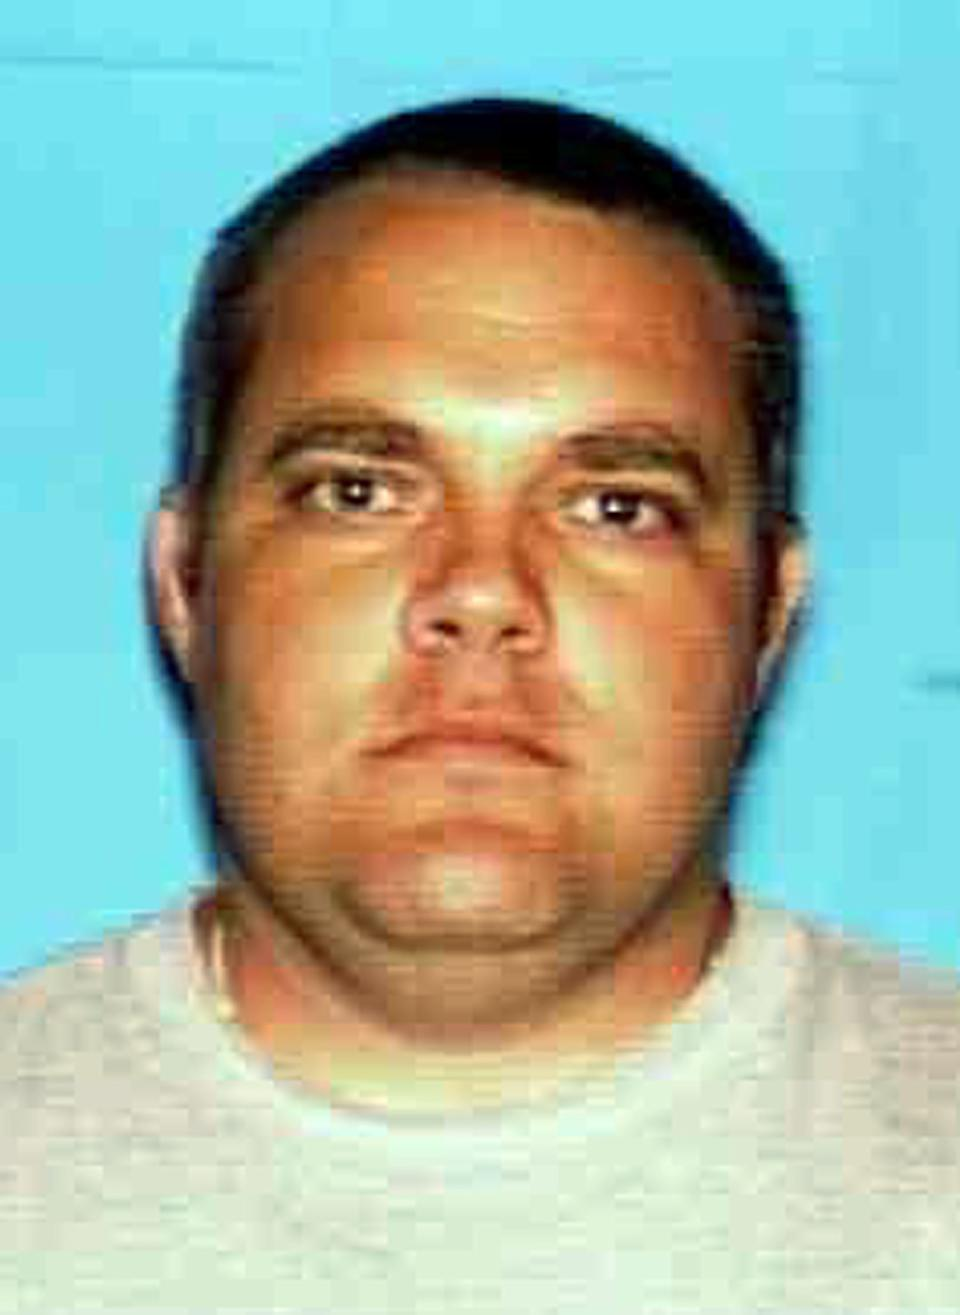 This undated image provided by the Orange County District Attorney's Office shows former Fullerton police officer Joseph Wolfe. Wolfe is the third former Fullerton police officer charged in the beating death of a mentally ill homeless man after a violent confrontation with police last year, prosecutors said Thursday, Sept. 27, 2012. (AP Photo/Orange County District Attorney, File)